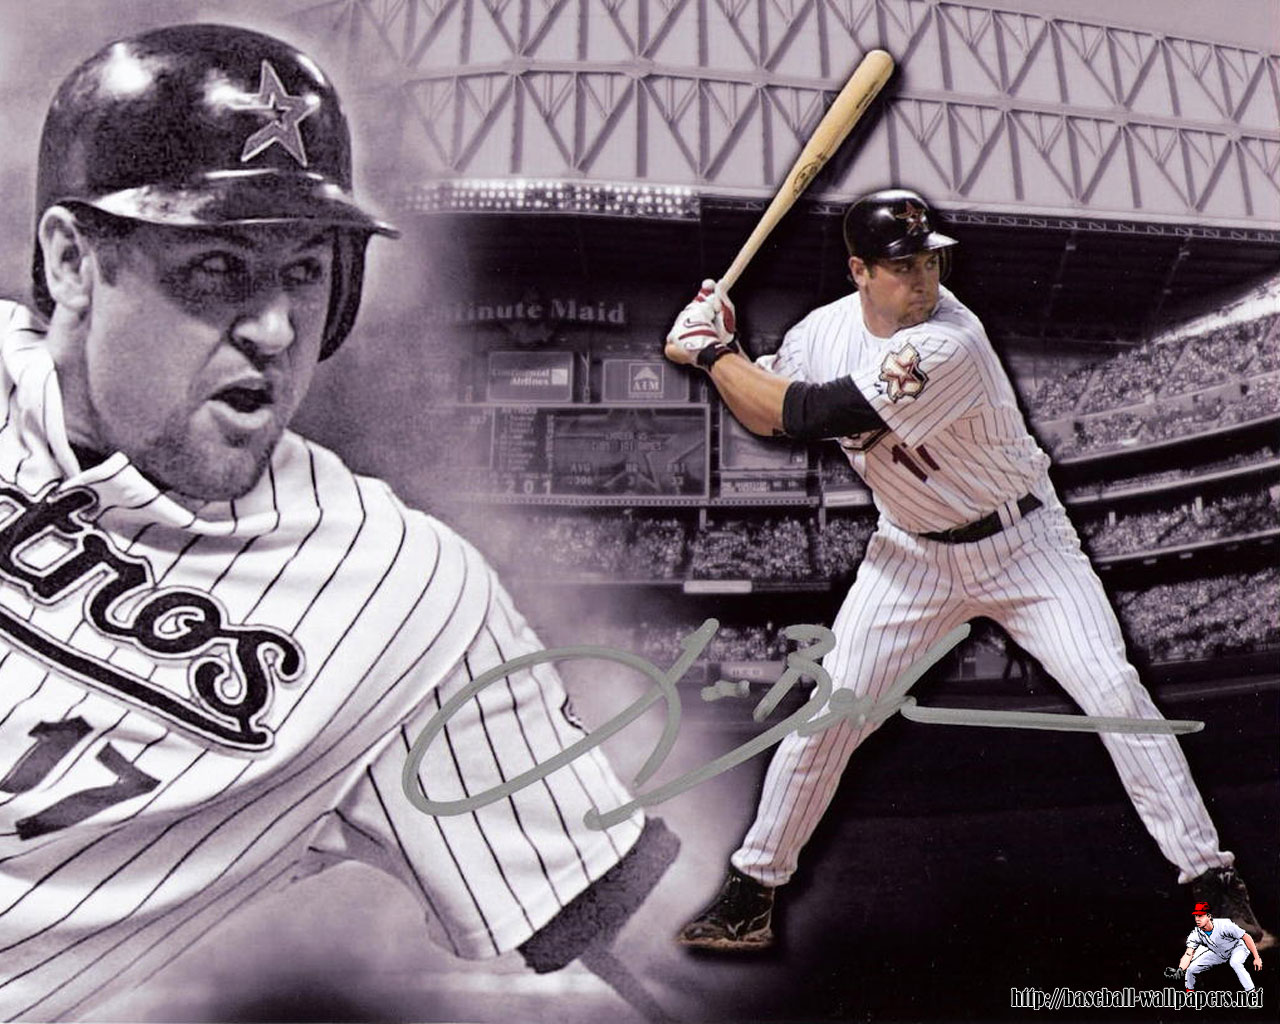 http://2.bp.blogspot.com/-GHSSmHS0Pw8/TmpqyUZsKvI/AAAAAAAAEWo/n9wx7Pi9Qgw/s1600/Baseball%20player%20wallpapers%201.jpg